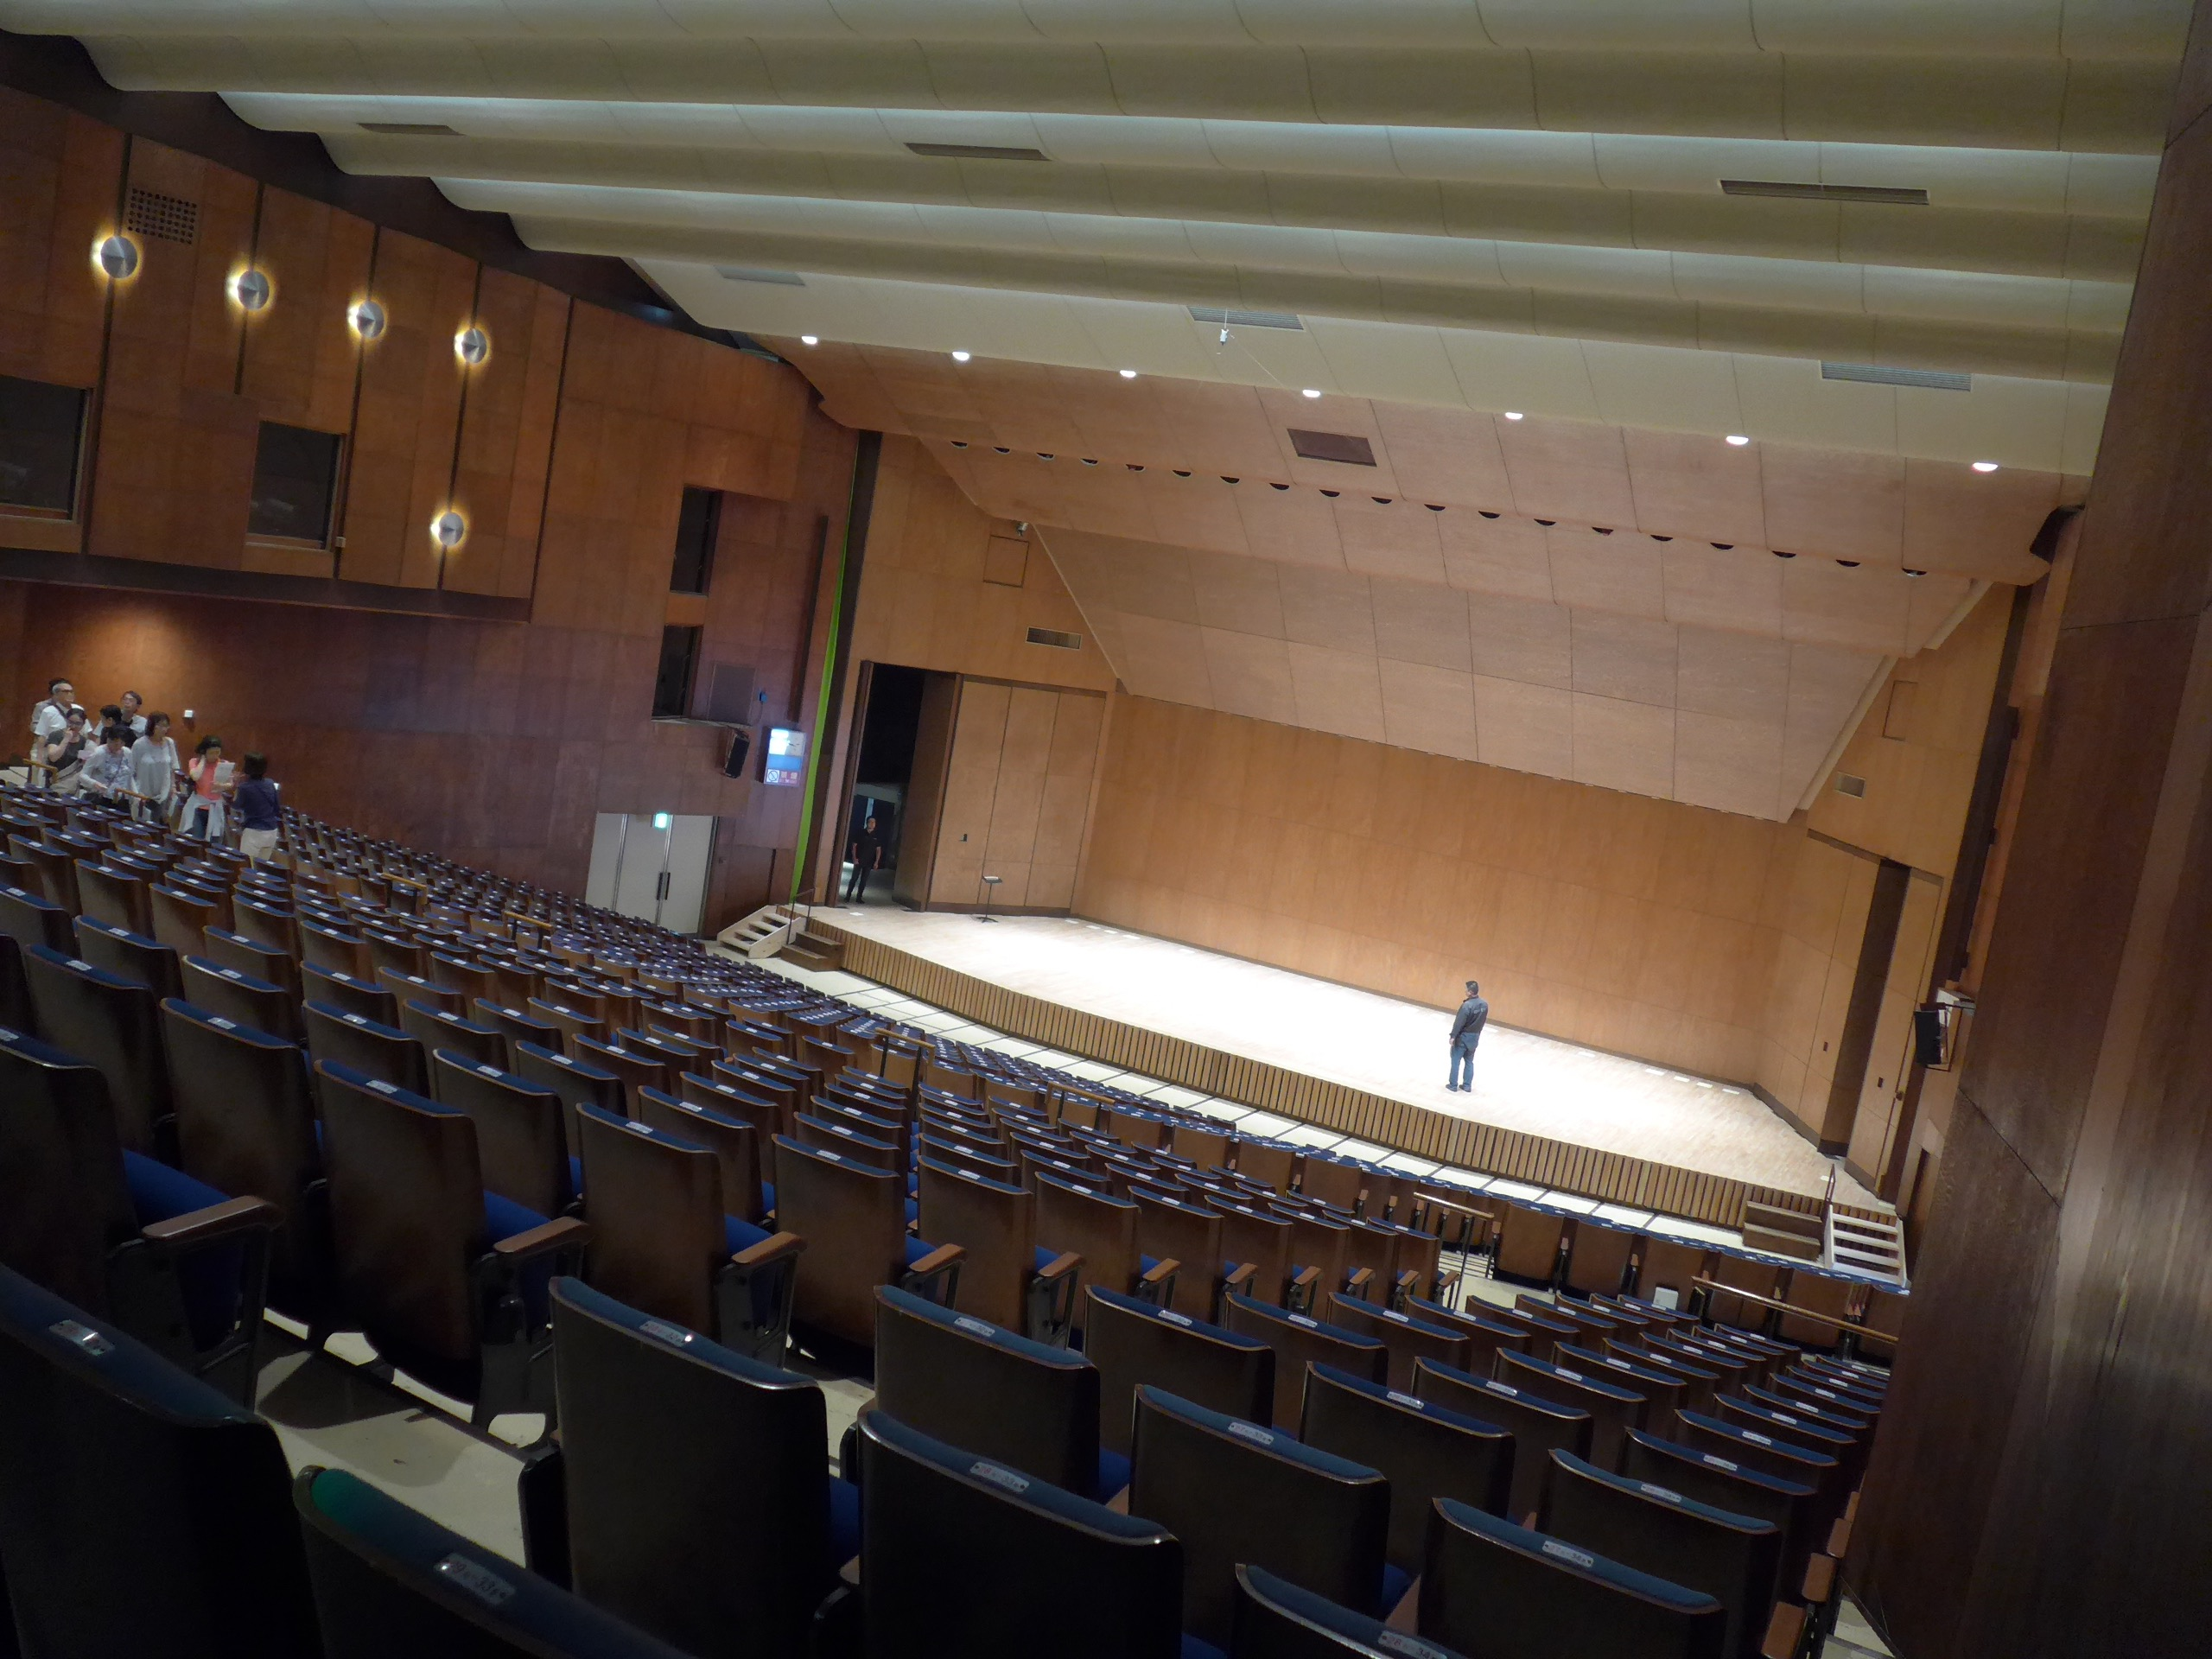 Good listening! Good watching! Enjoy the modernism of Maekawa architecture at the prefectural music hall